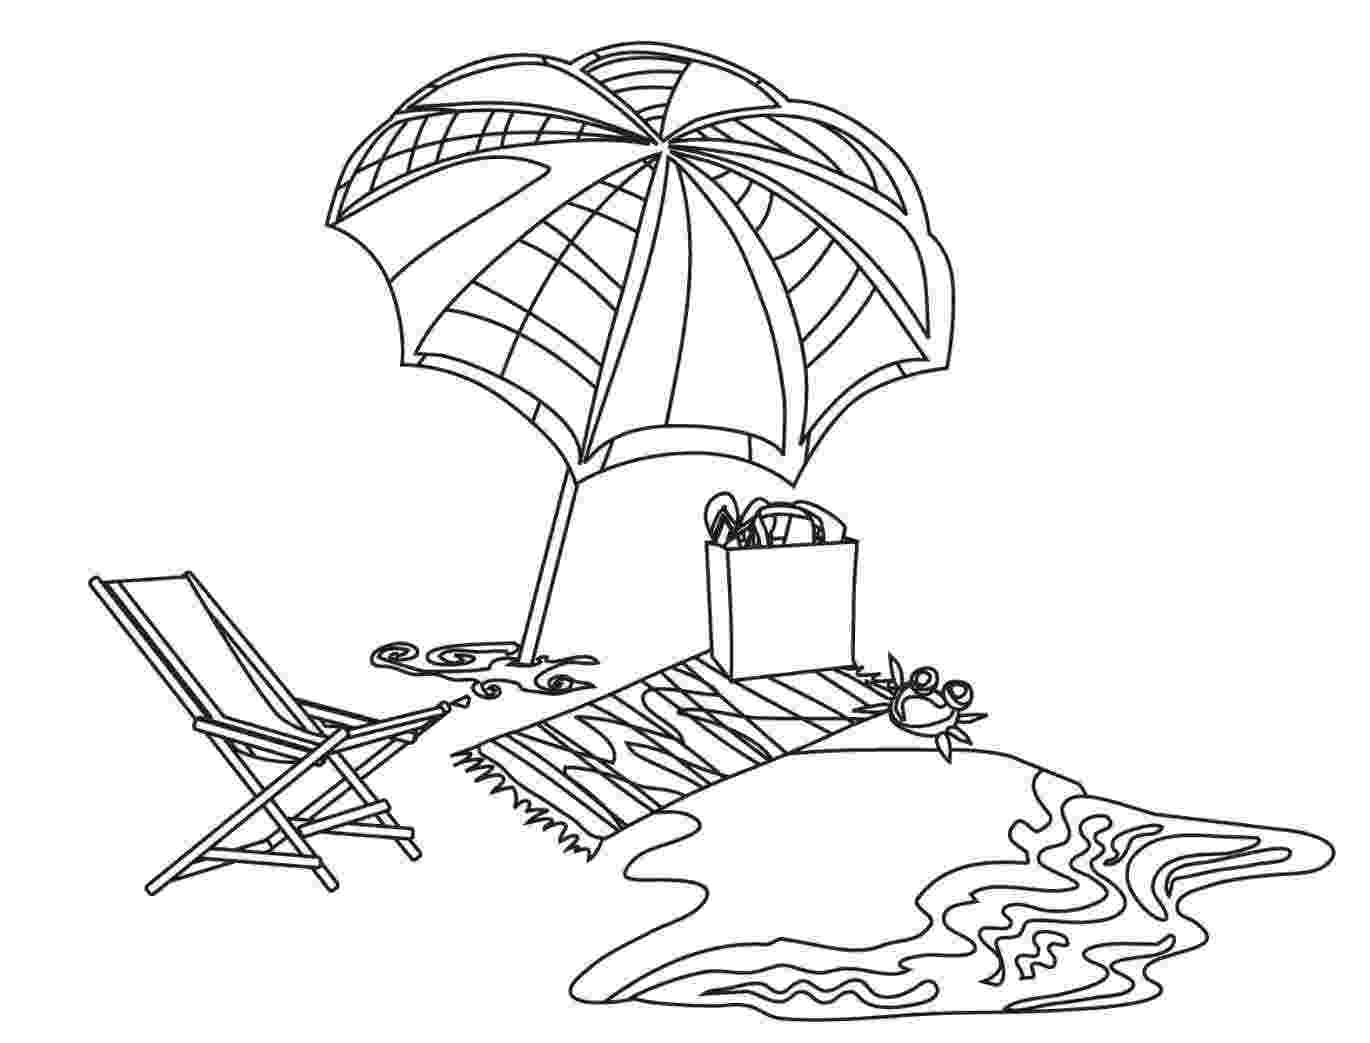 colouring picture beach free printable beach coloring pages for kids picture colouring beach